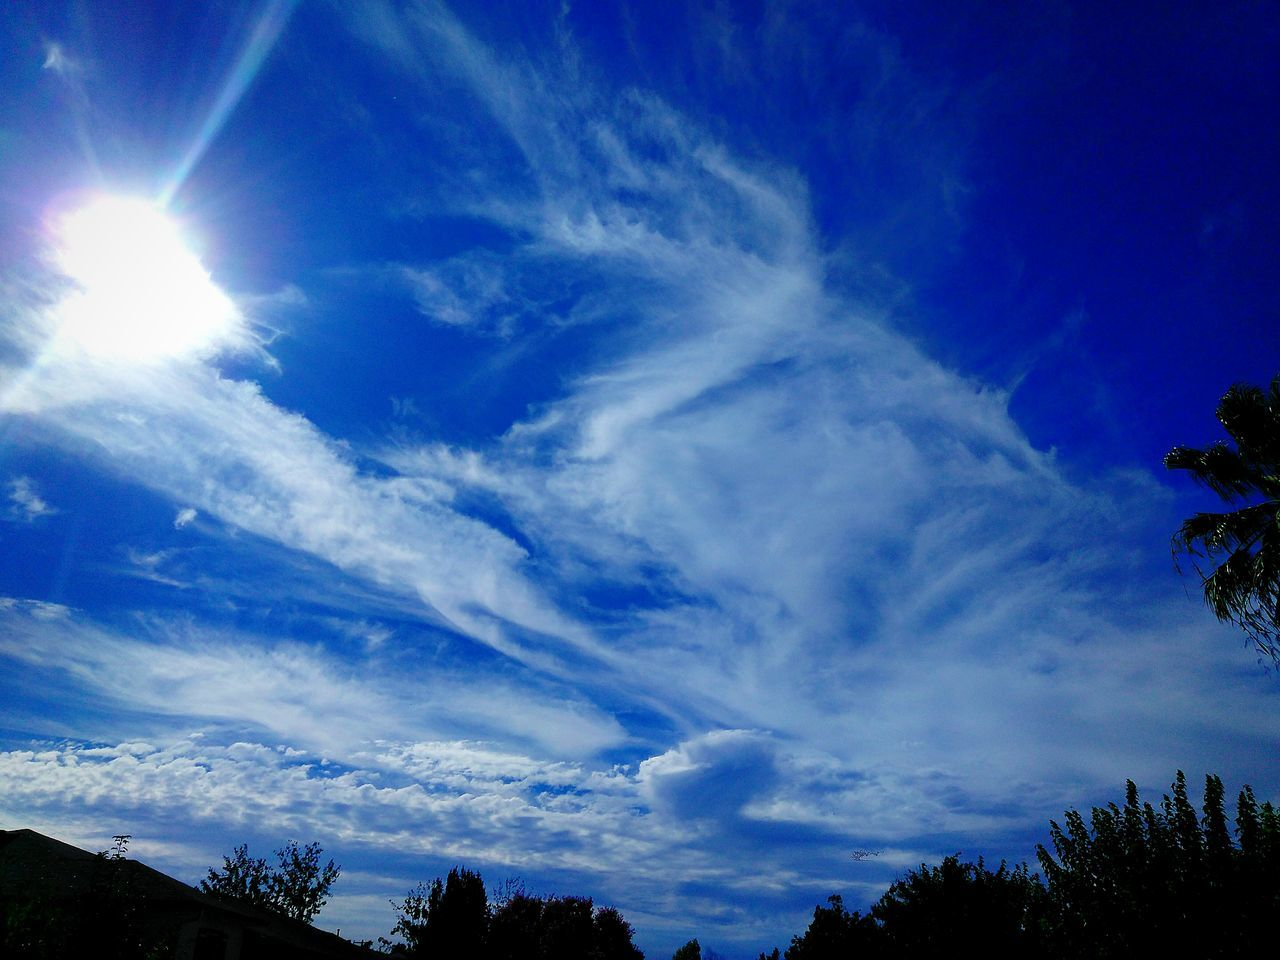 sky, low angle view, cloud - sky, beauty in nature, scenics, nature, blue, tranquil scene, tree, tranquility, no people, outdoors, day, sunlight, silhouette, growth